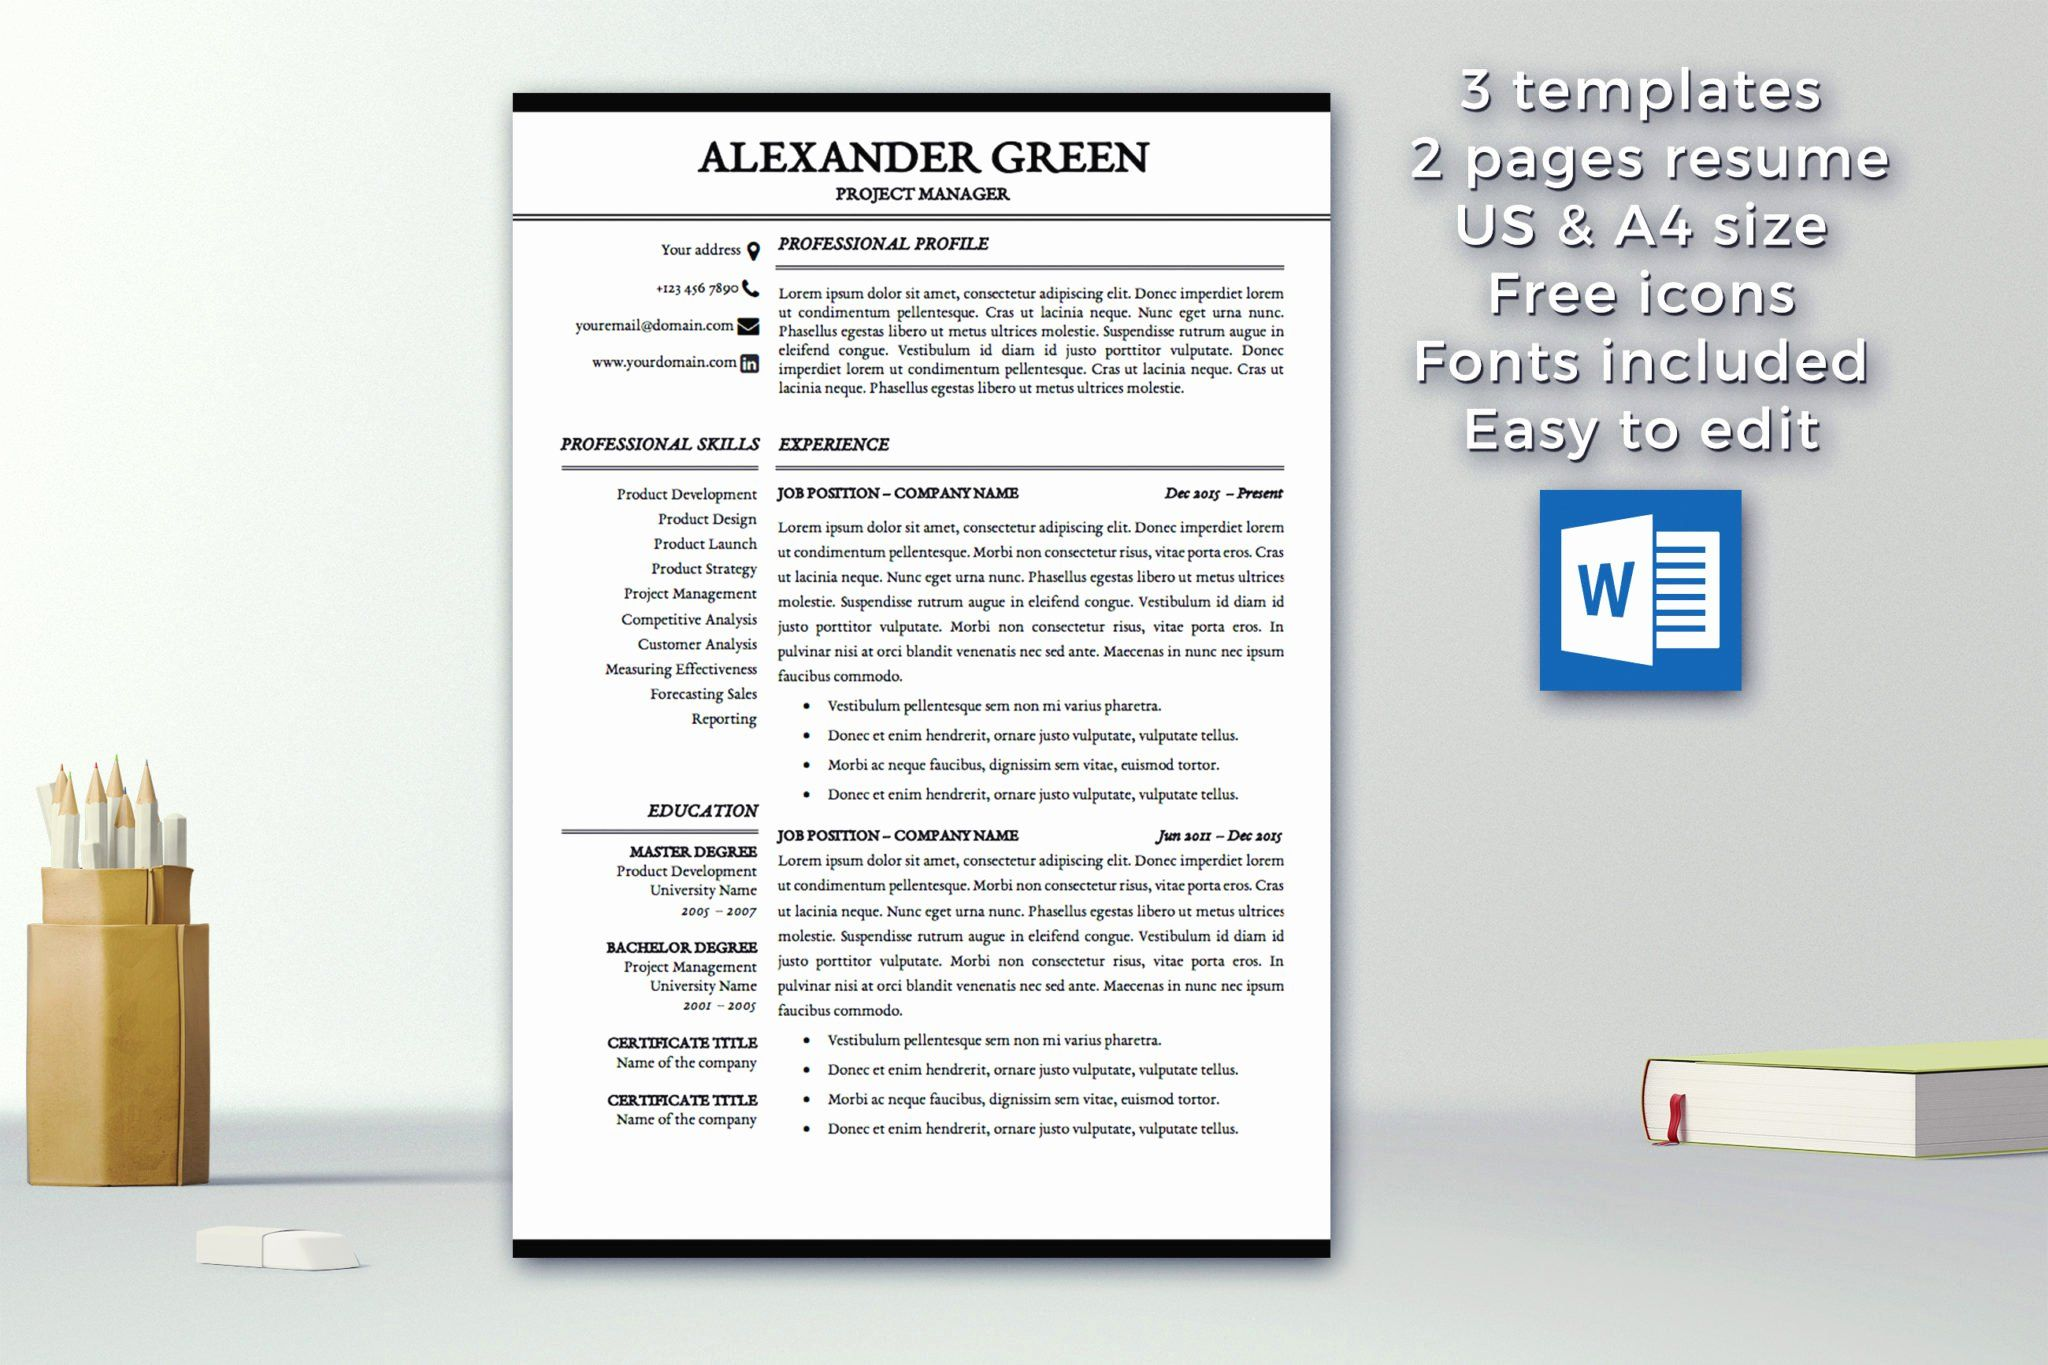 25 resume cover pages templates in 2020 page international job cv format teacher responsibilities on sample skills statements